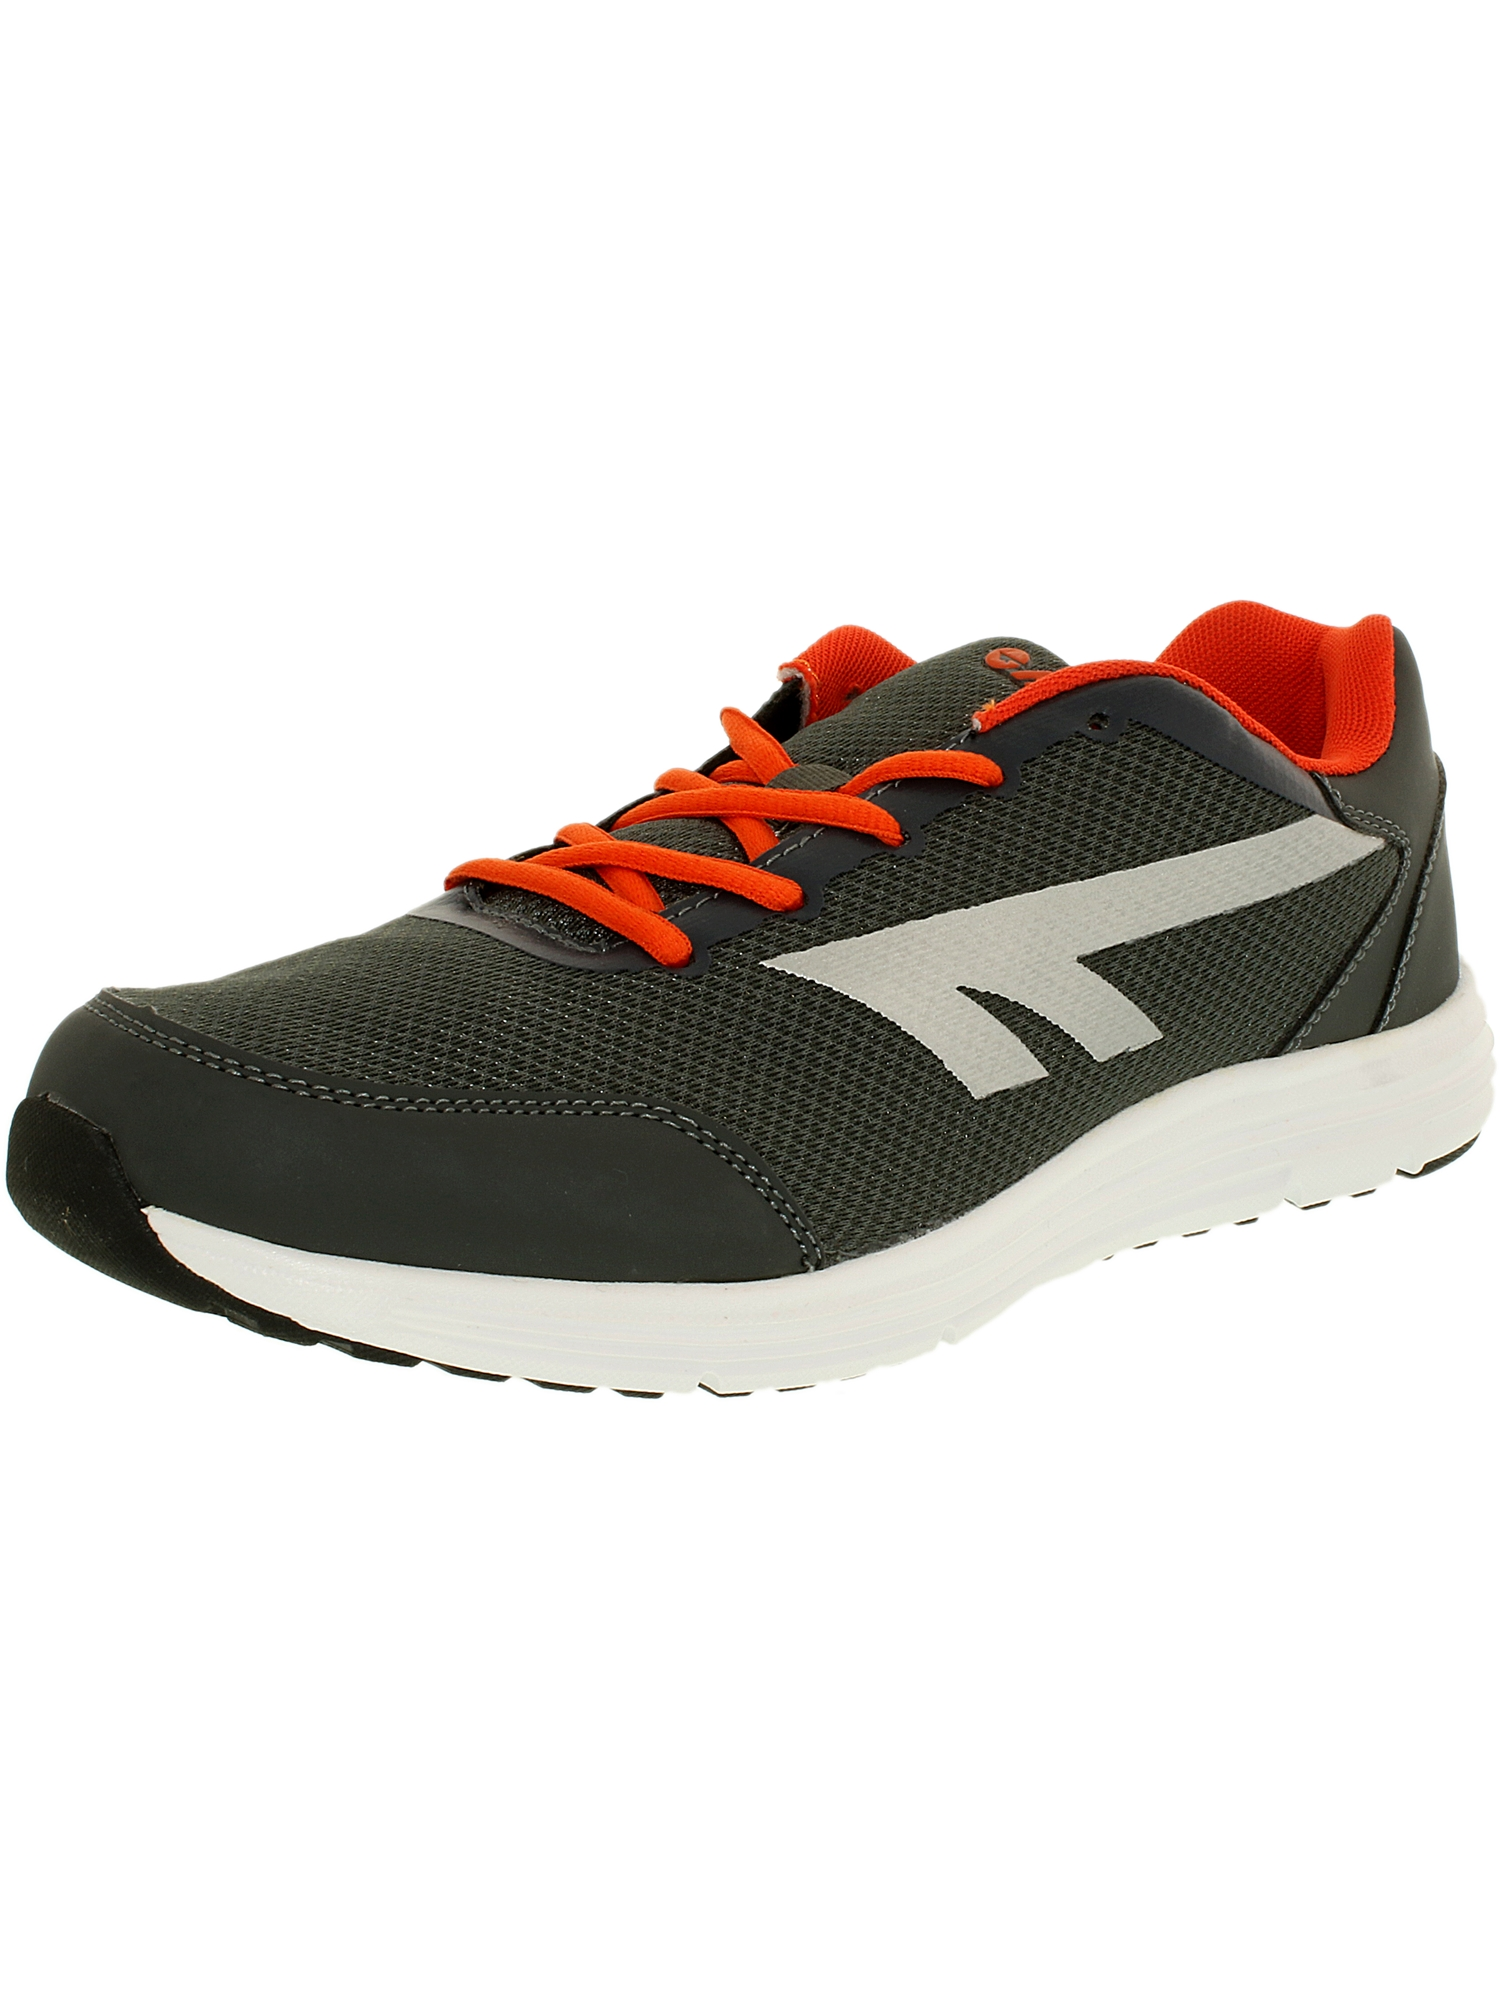 Hi-Tec Men's Pajo Royal Dark Grey Silver Ankle-High Running Shoe 12M by Hi-Tec